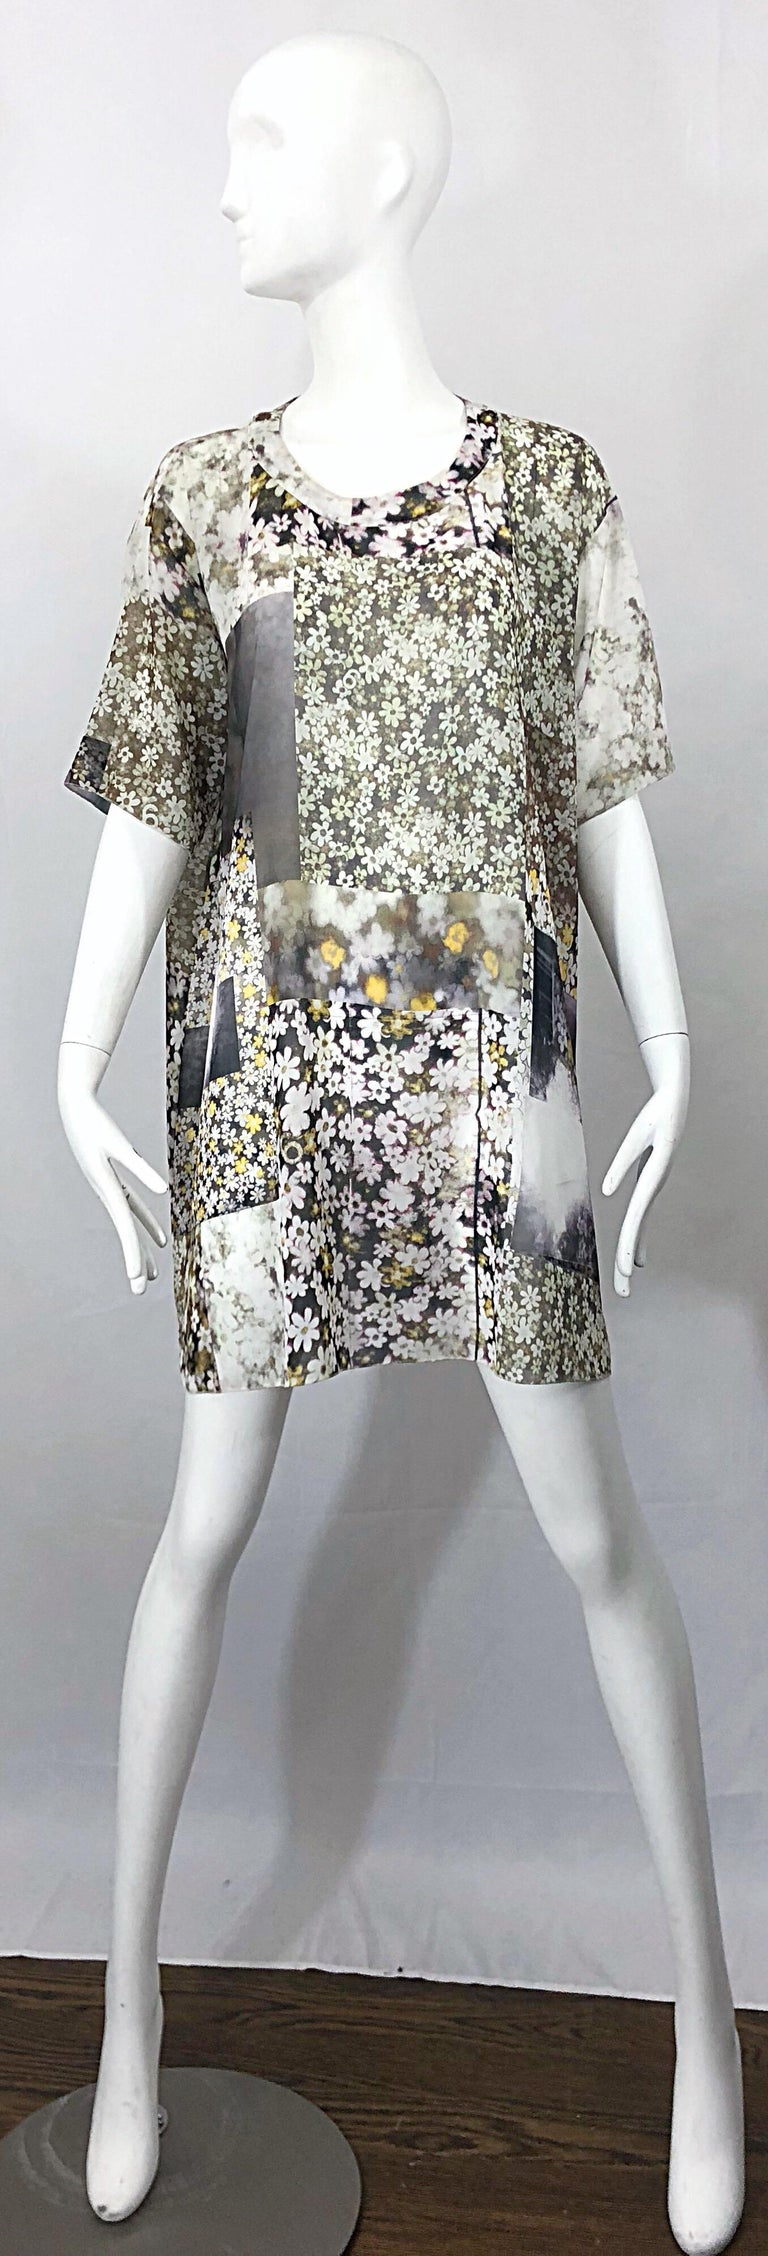 3b97fe681823 Rare MAISON MARGIELA MM6 oversized silky photo print patchwork semi sheer t-shirt  dress tunic